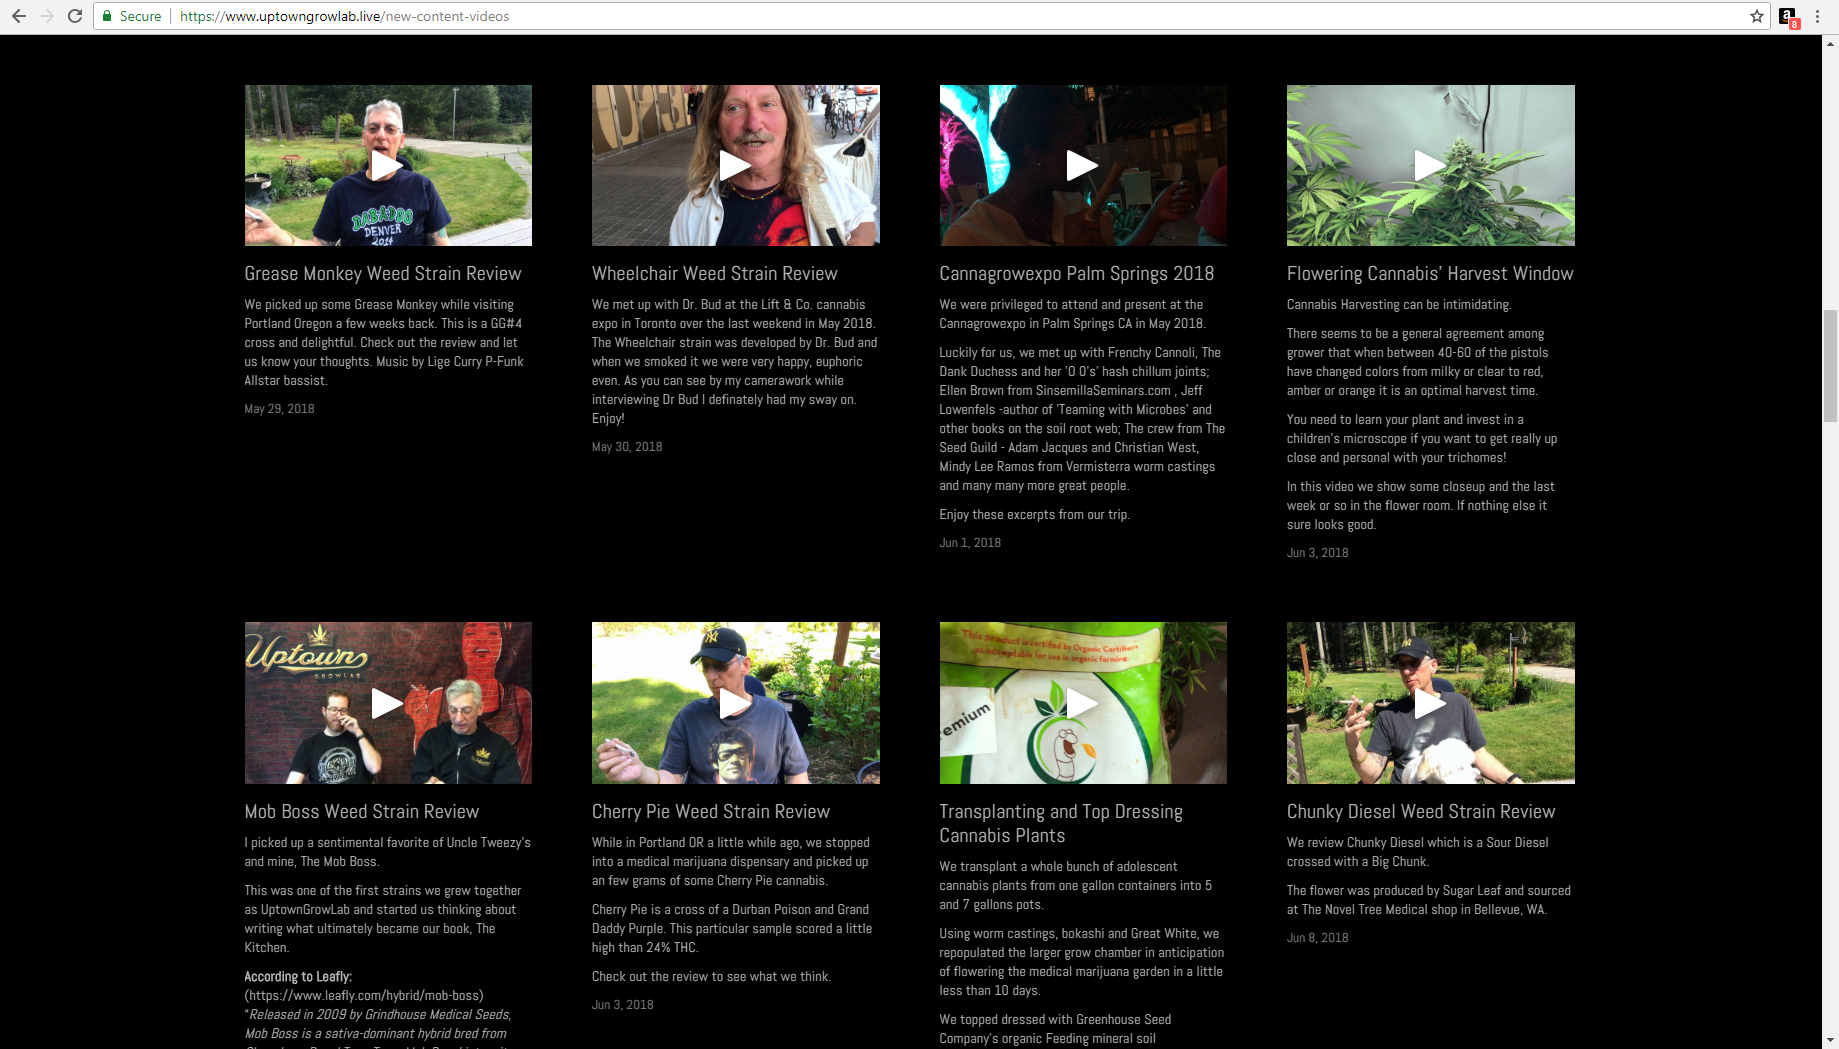 Our exclusive custom-branded video content library